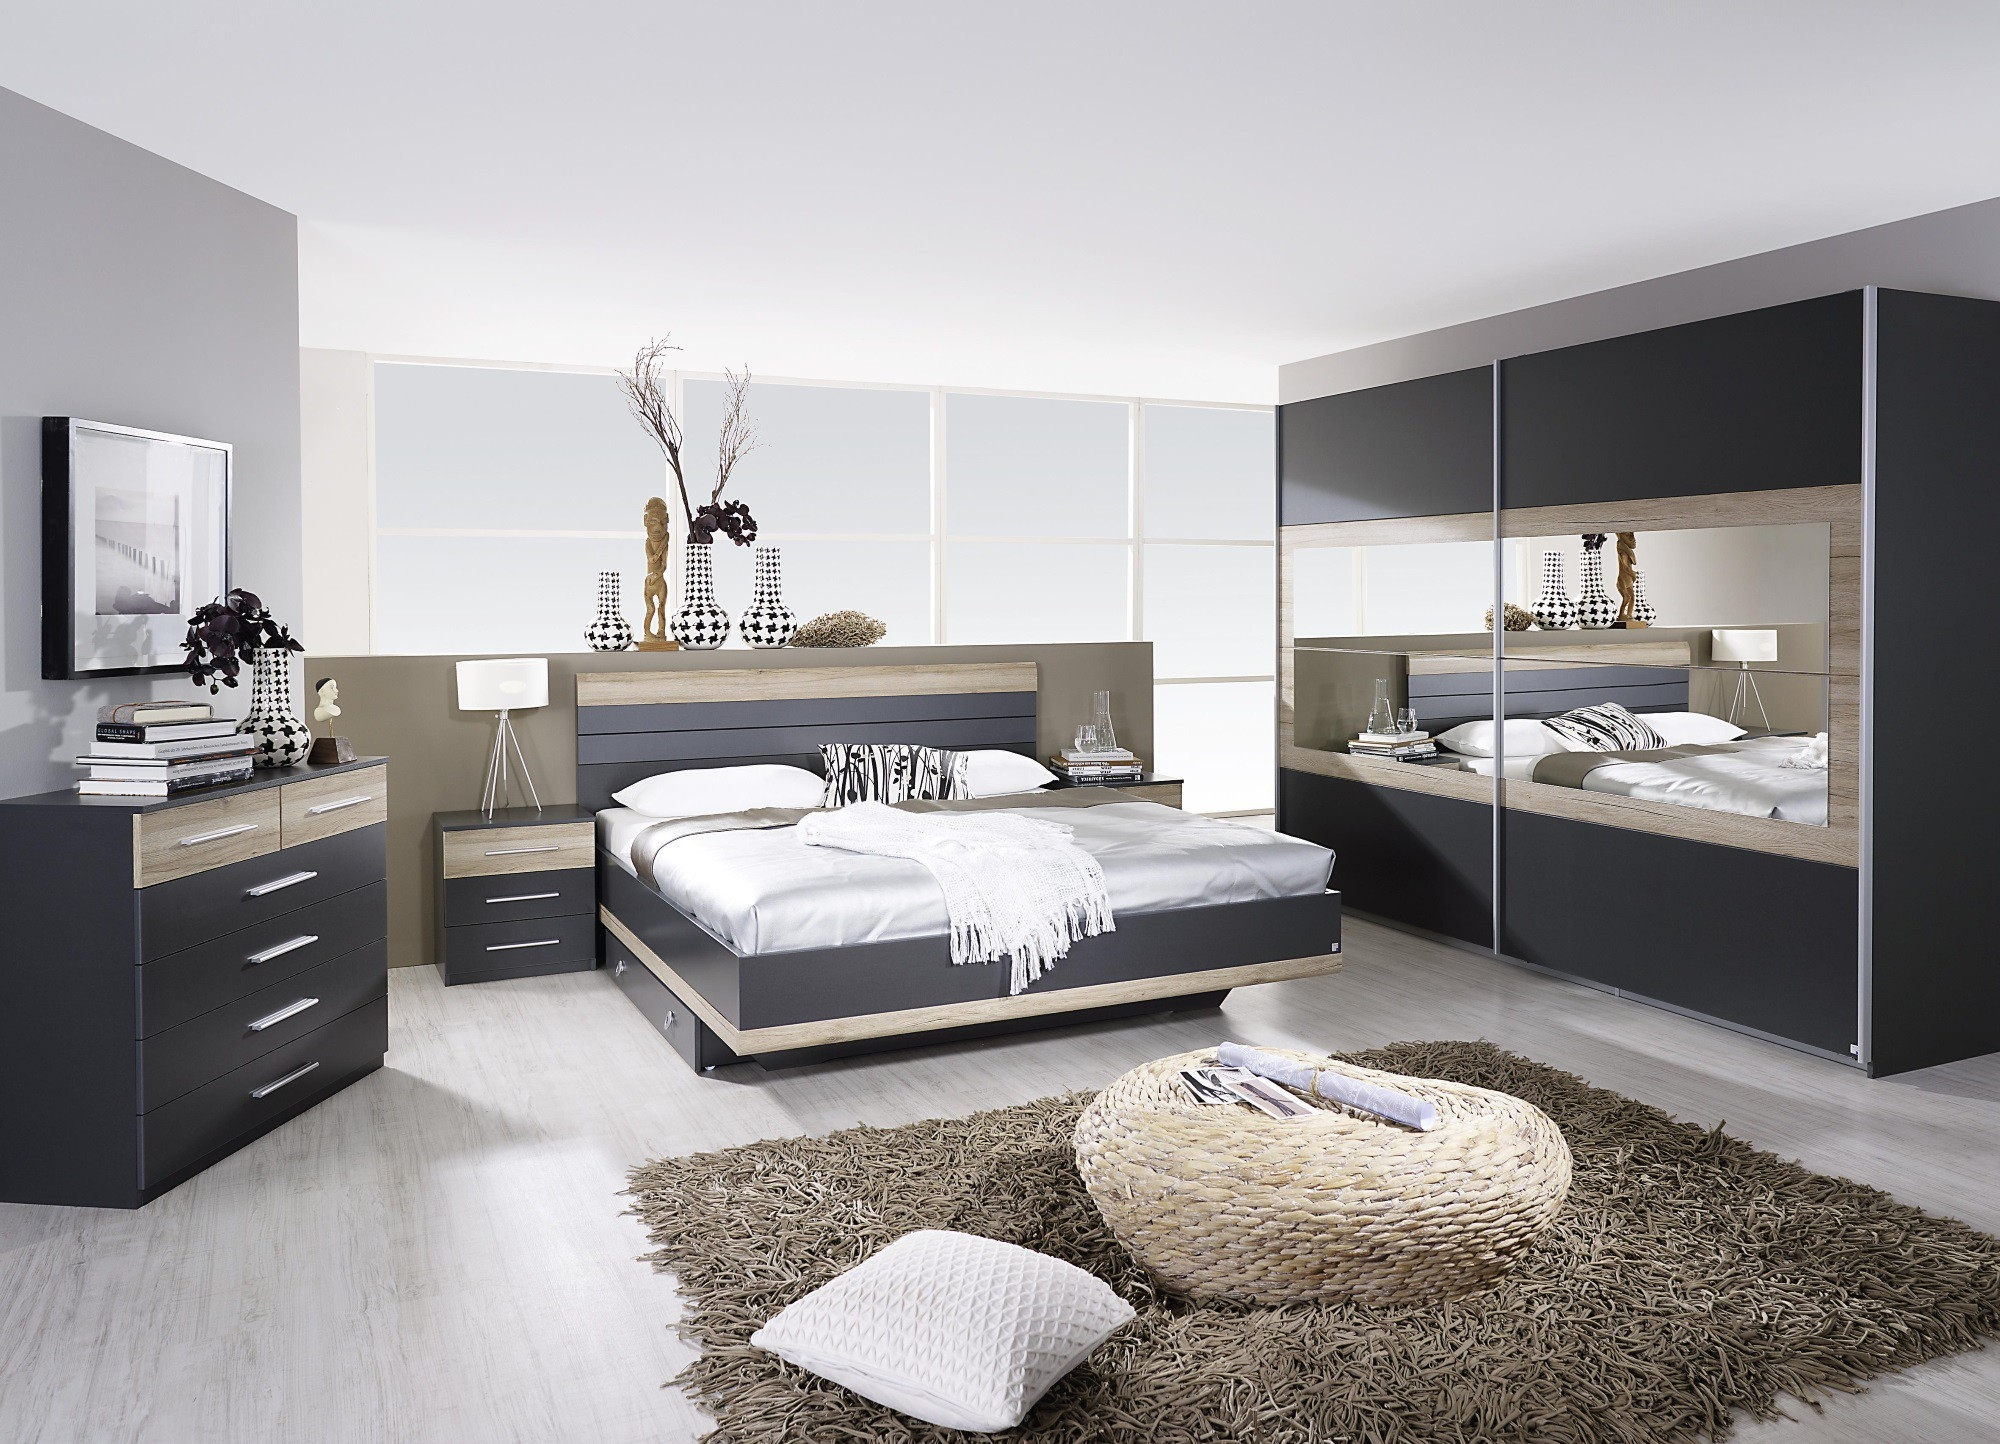 Chambre adulte compl te contemporaine gris ch ne clair for Deco chambre adulte contemporaine